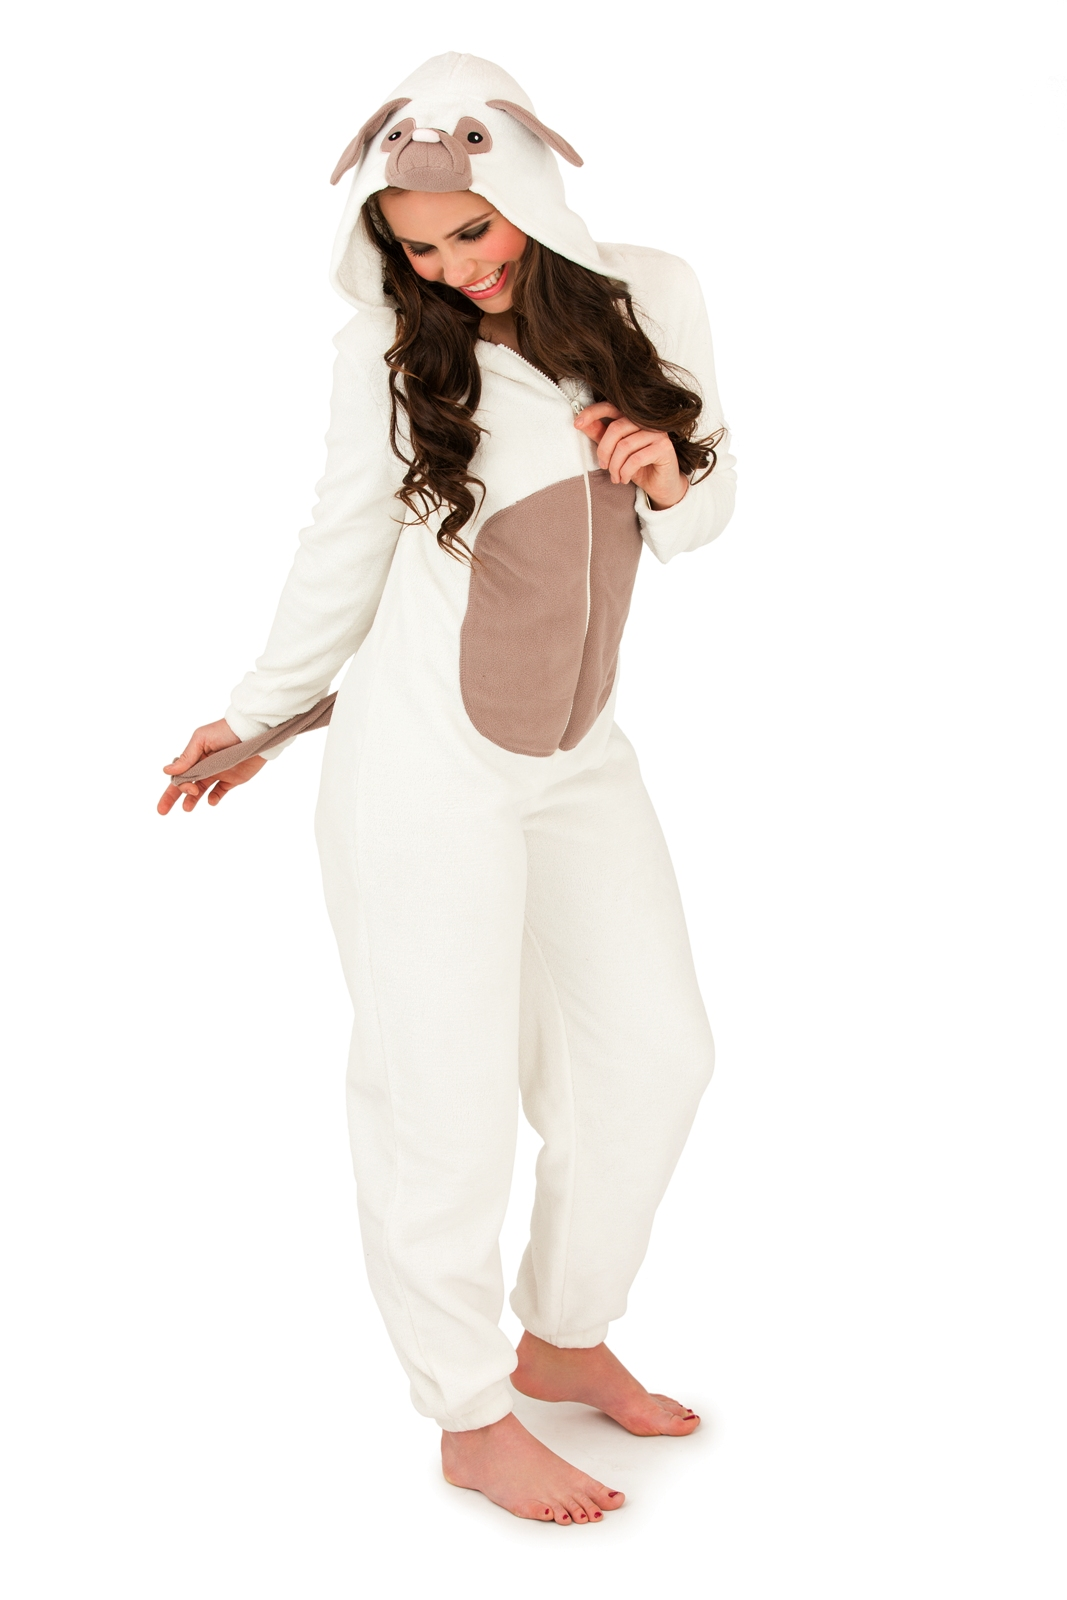 Lounge District white Pug Onesie for Women Online Shopping in Dubai, Abu Dhabi, UAE - LOAT67UQE - Free Next Day Delivery day Exchange, Cash On Delivery.